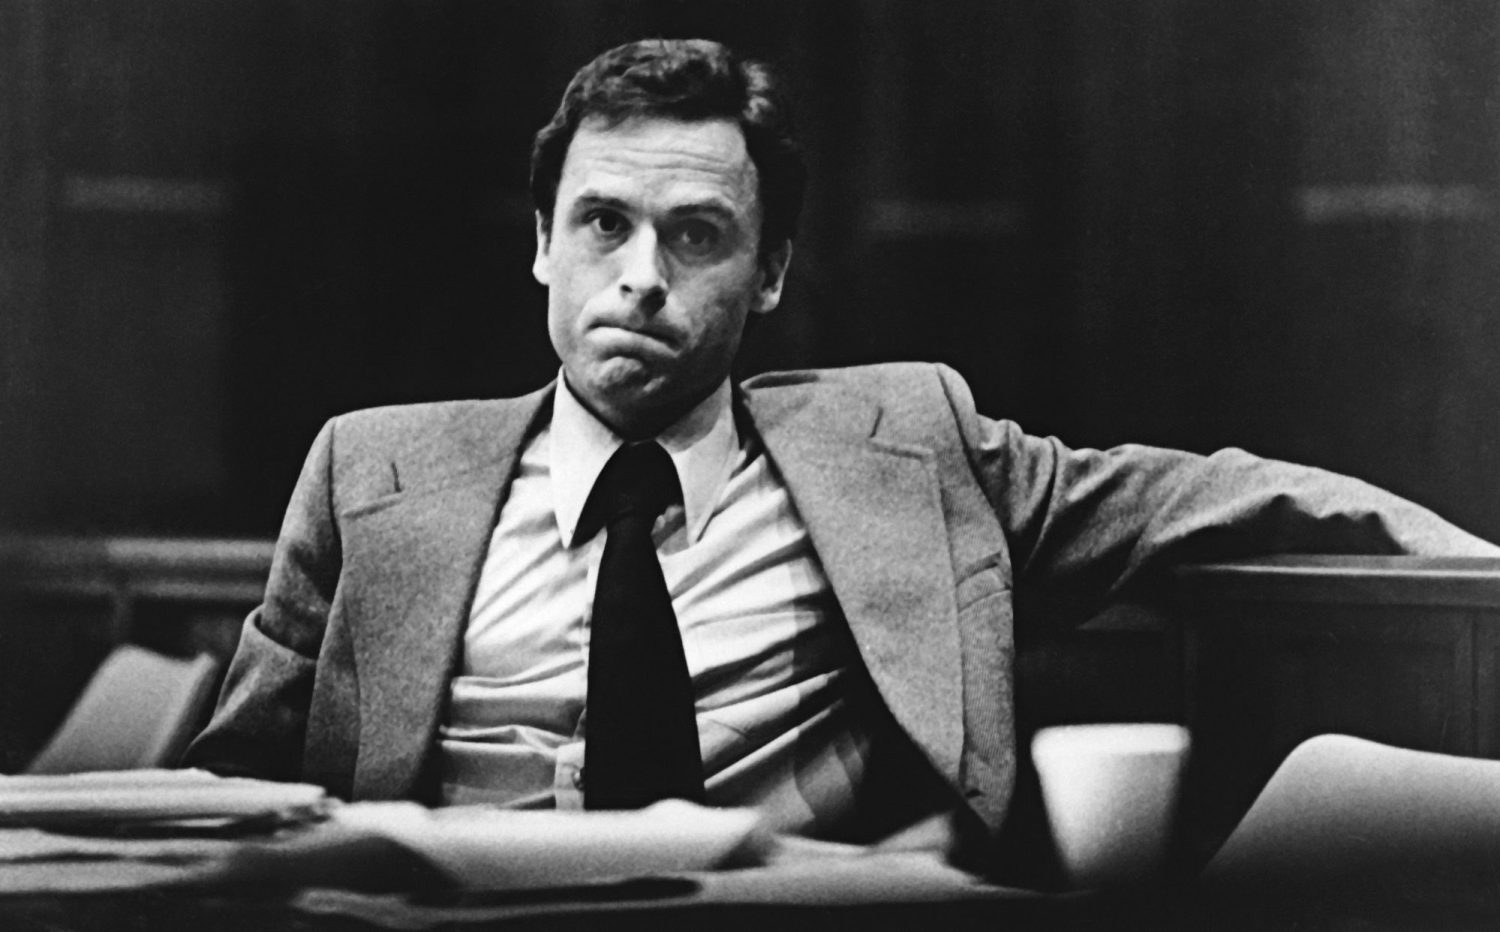 Green River Killer: How Ted Bundy Assisted In The Arrest Of Gary Ridgeway, Who Raped And Killed Over 70 Women